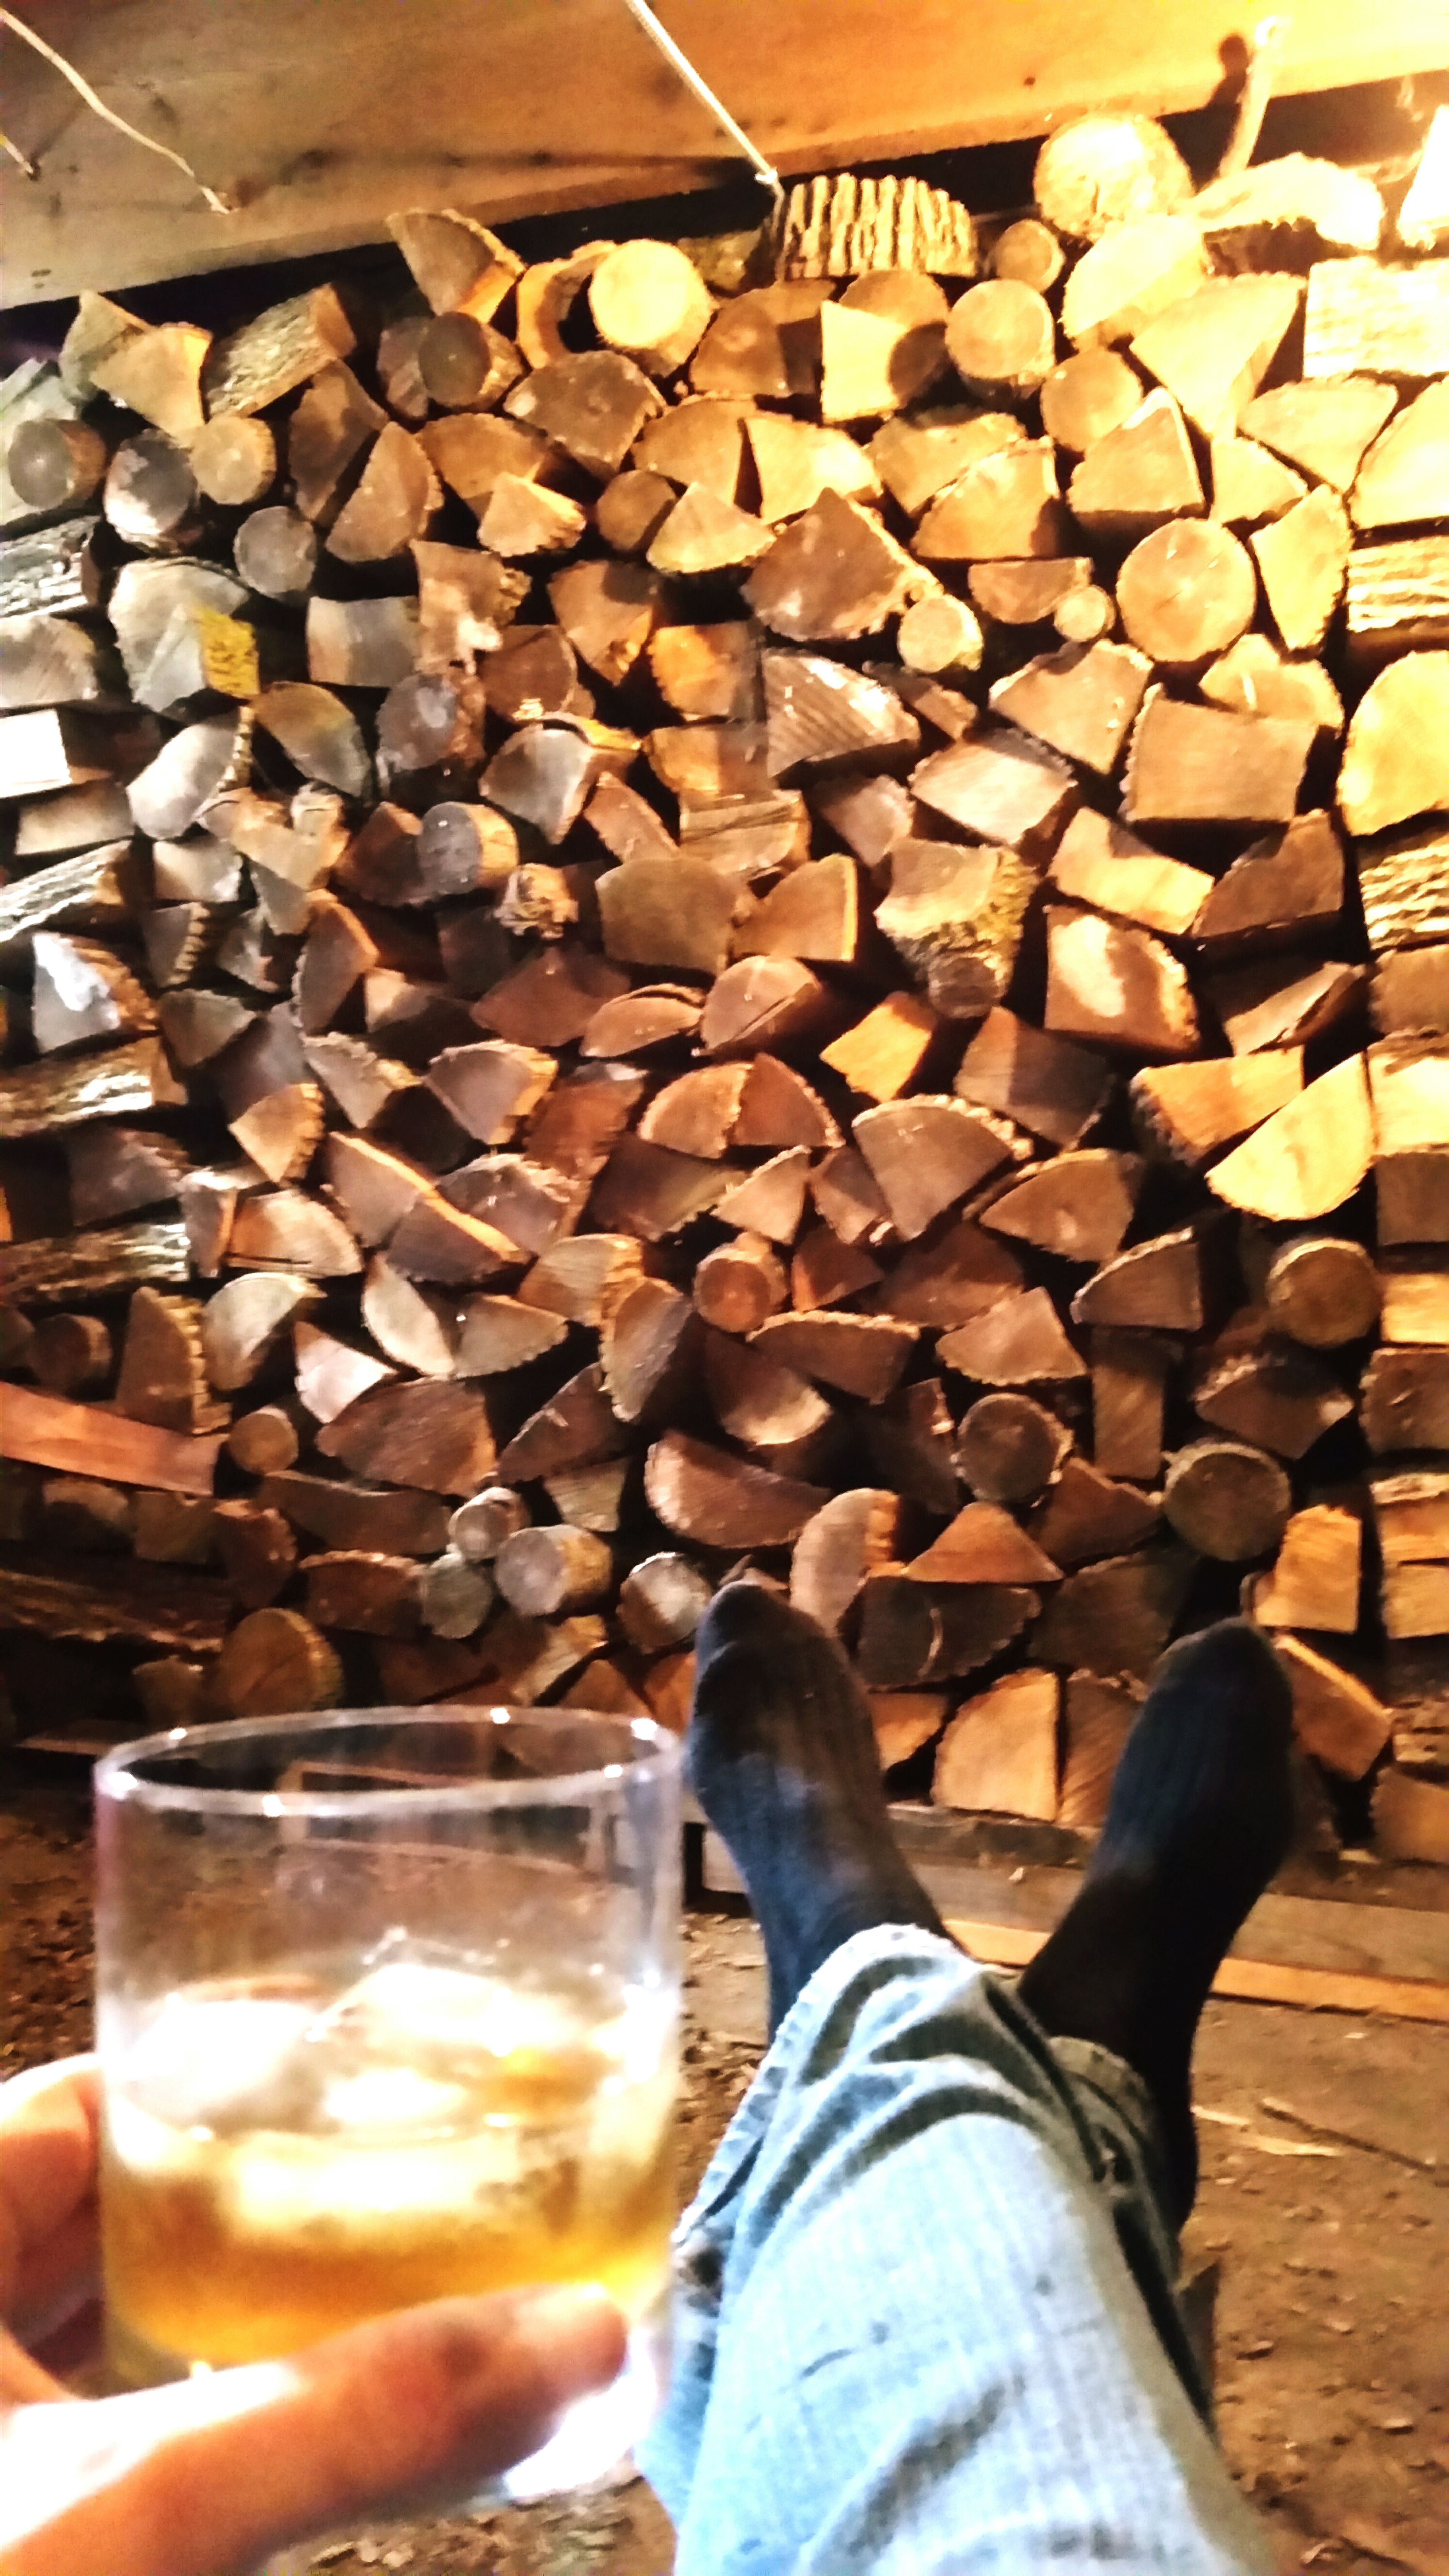 Me celebrating with Mr. Jim Beam after filling my basement with 16 face cords of firewood for the winter. Cheers! CountryLivinG Firewood Firewood Stack Timetodownsomejimbeam Jimbeam Canadianwinter Bloodsweatandtears Winterwarmth